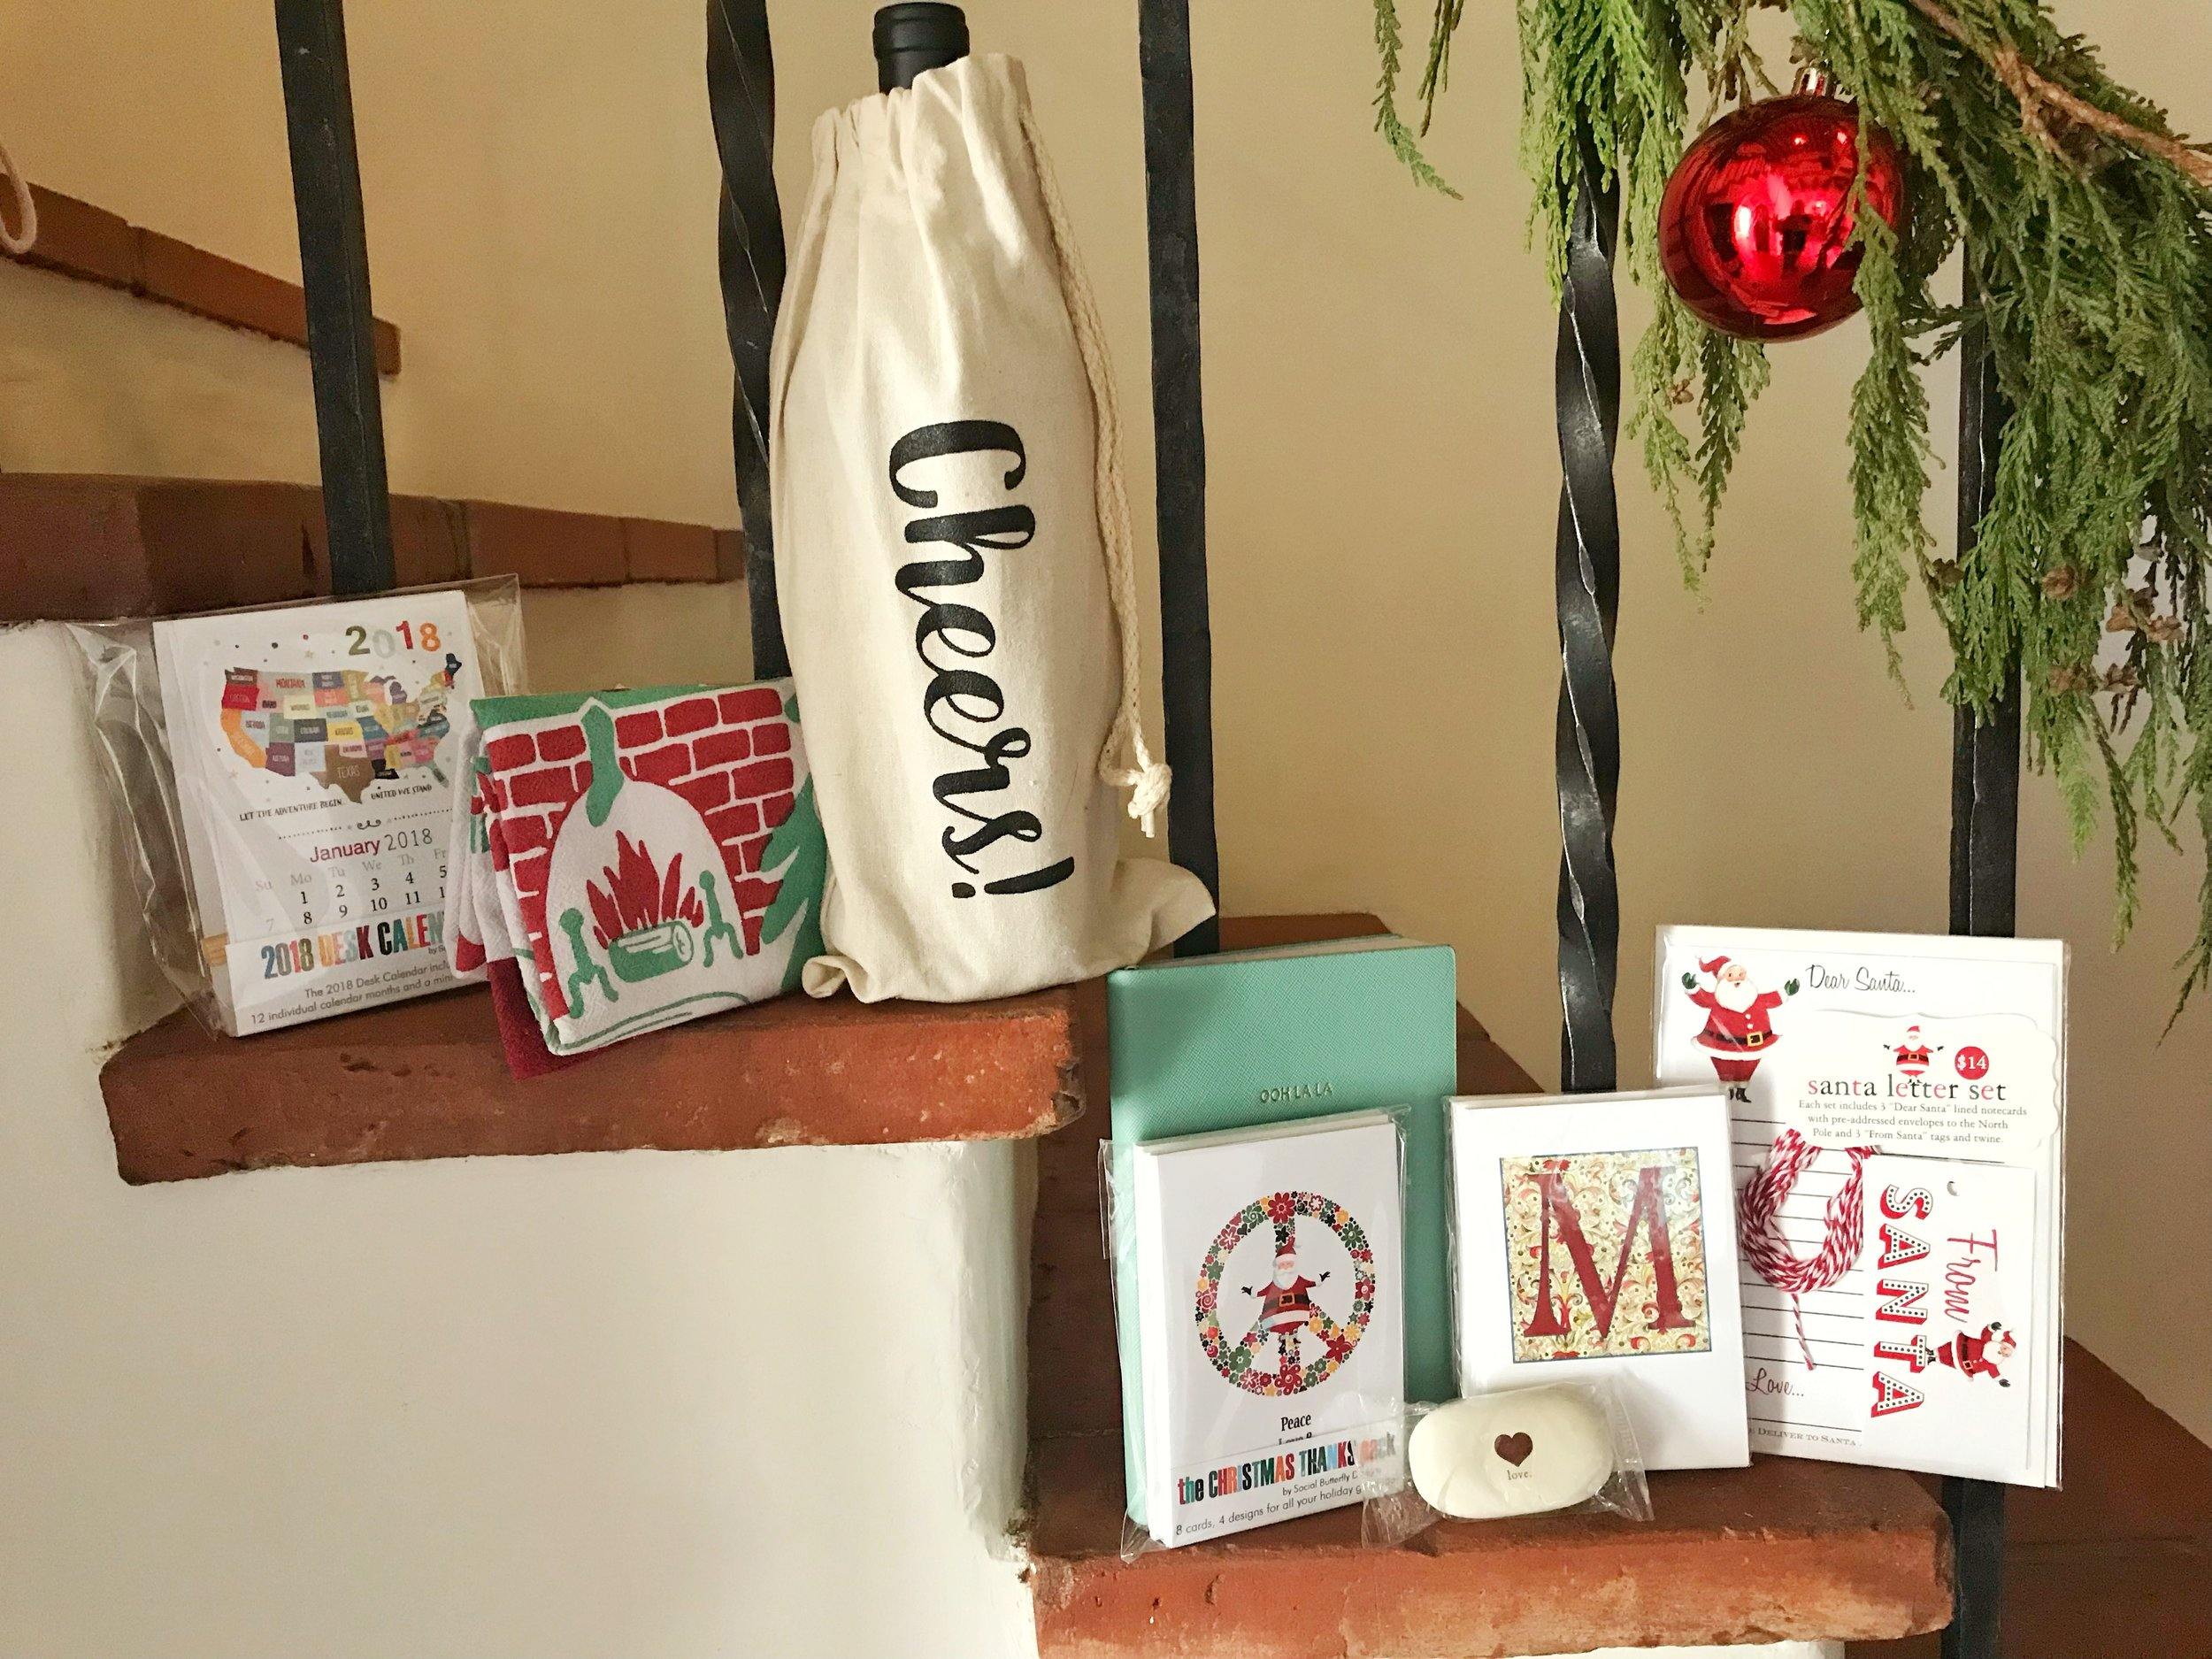 A small sampling of some of our favorite holiday offerings!